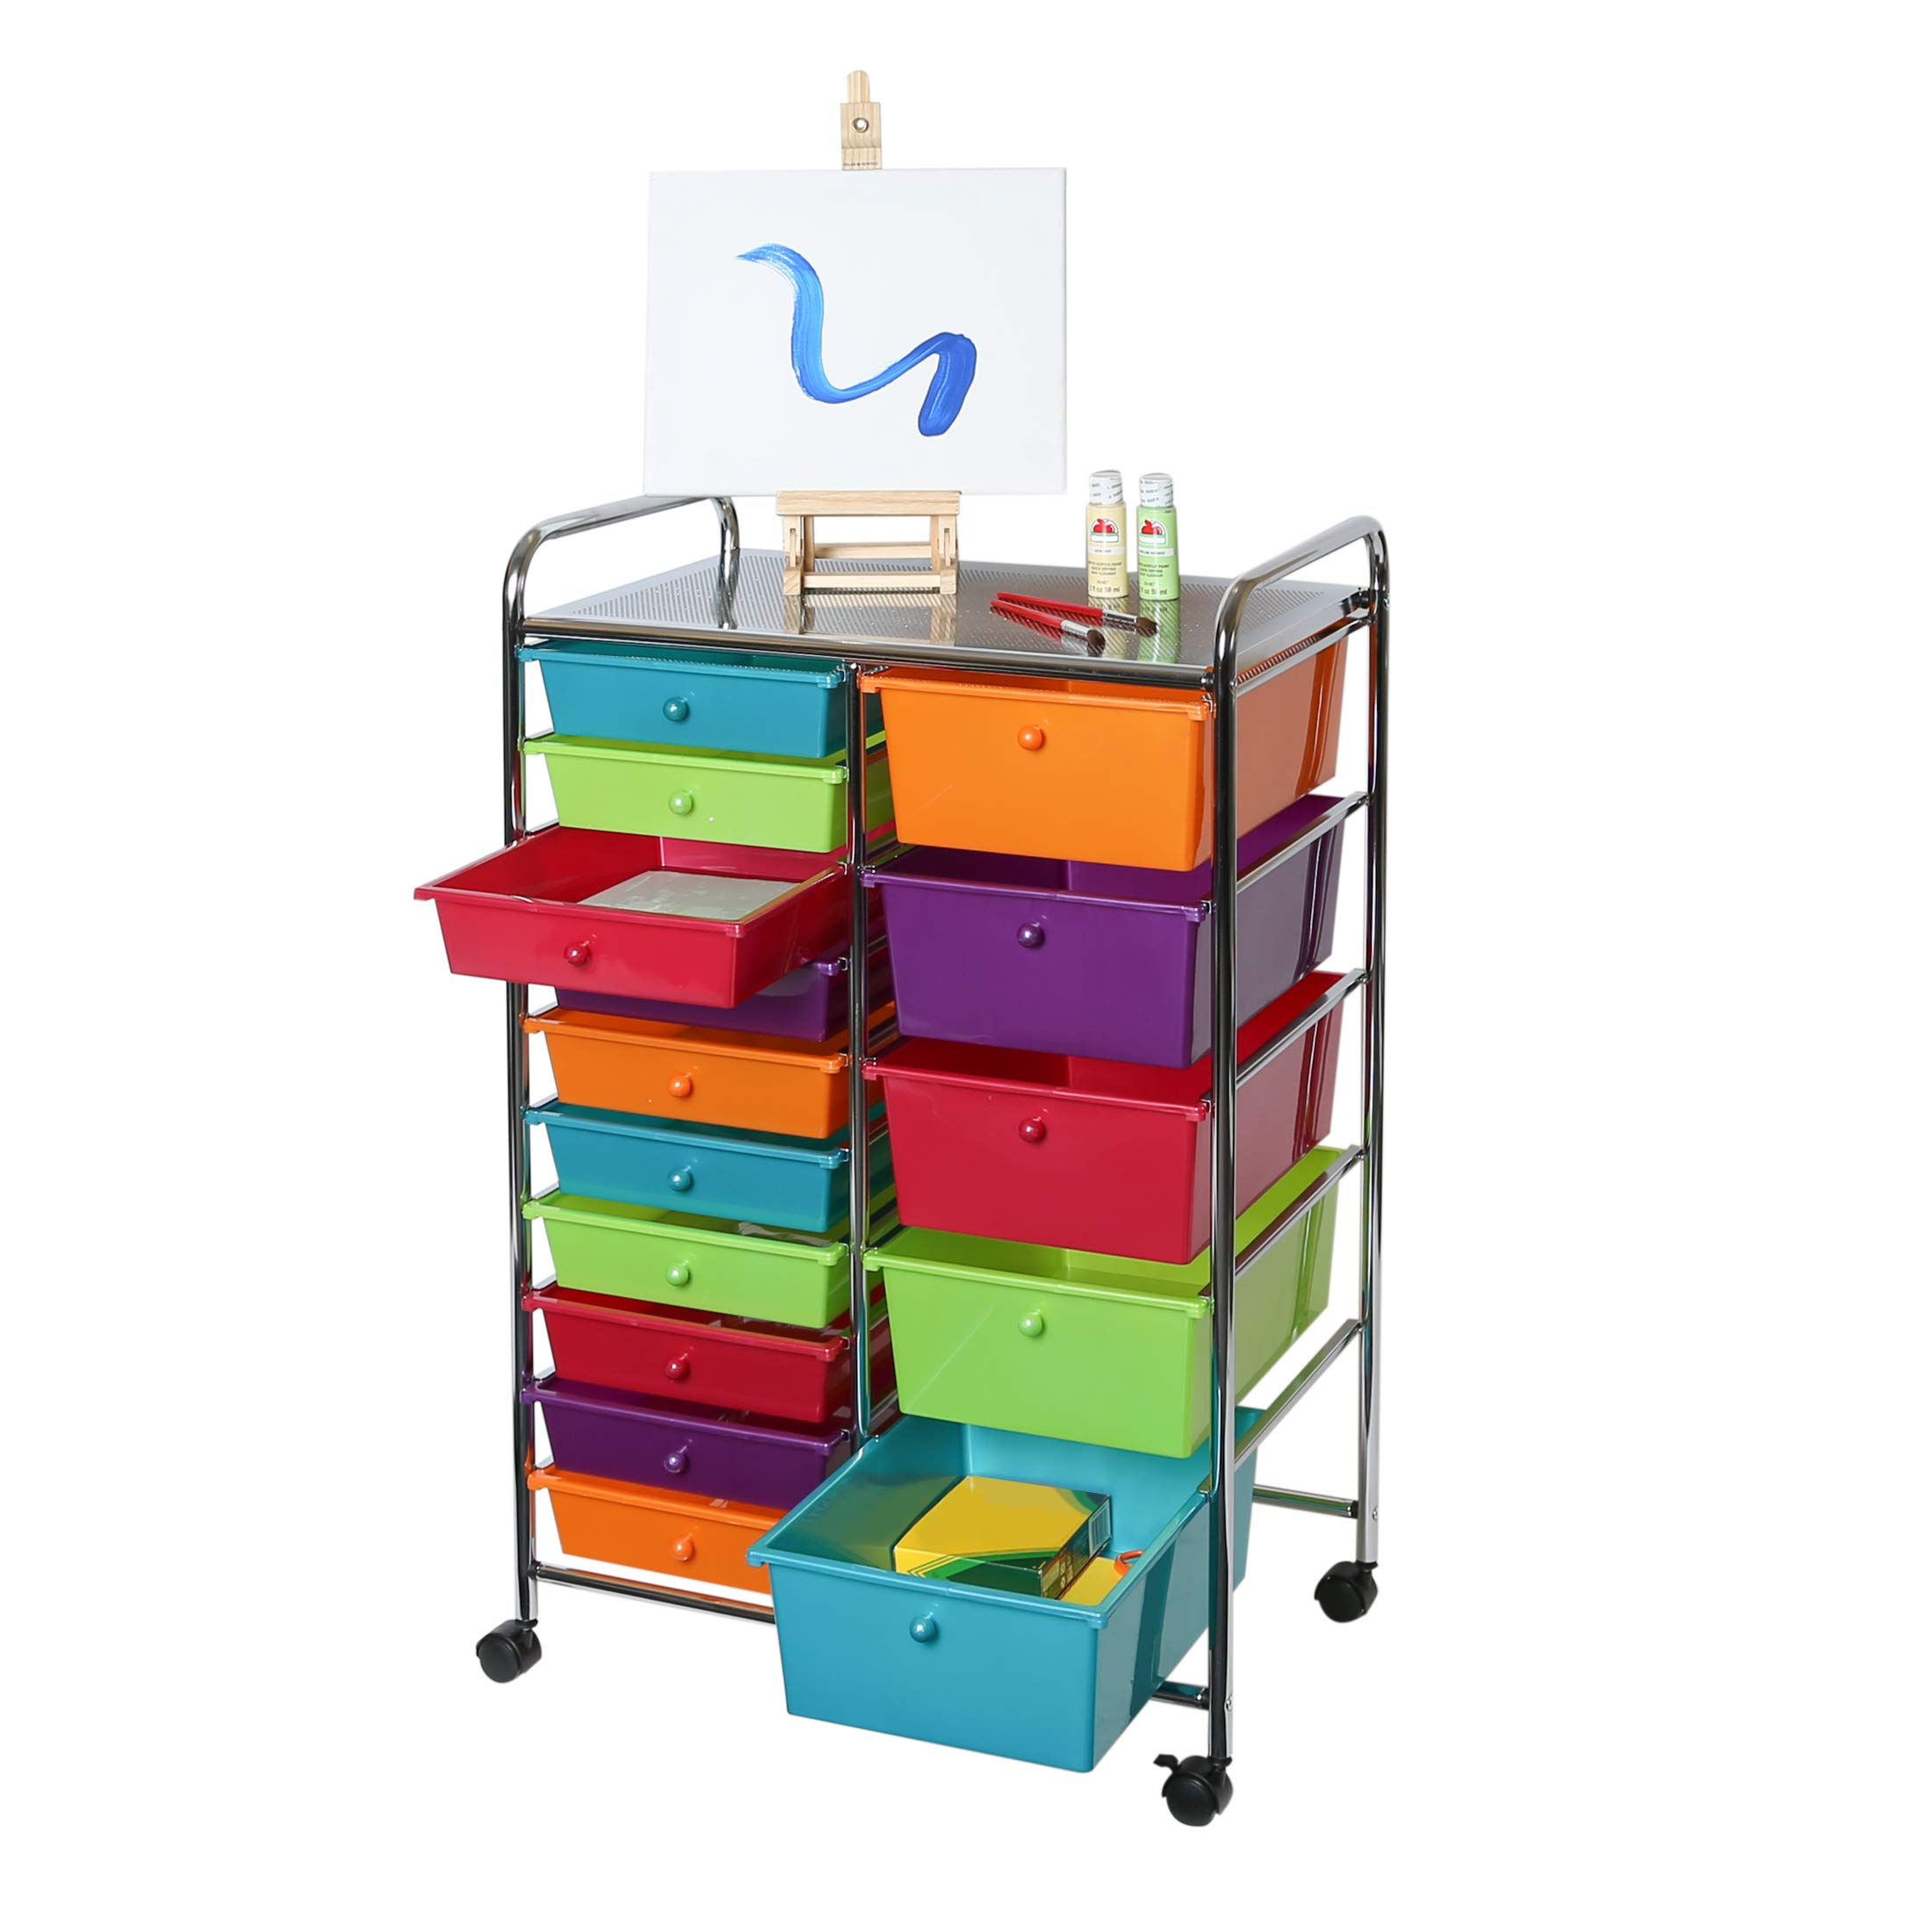 Seville Classics 15-Drawer Organizer Cart, Multicolor (Pearlized) by Seville Classics